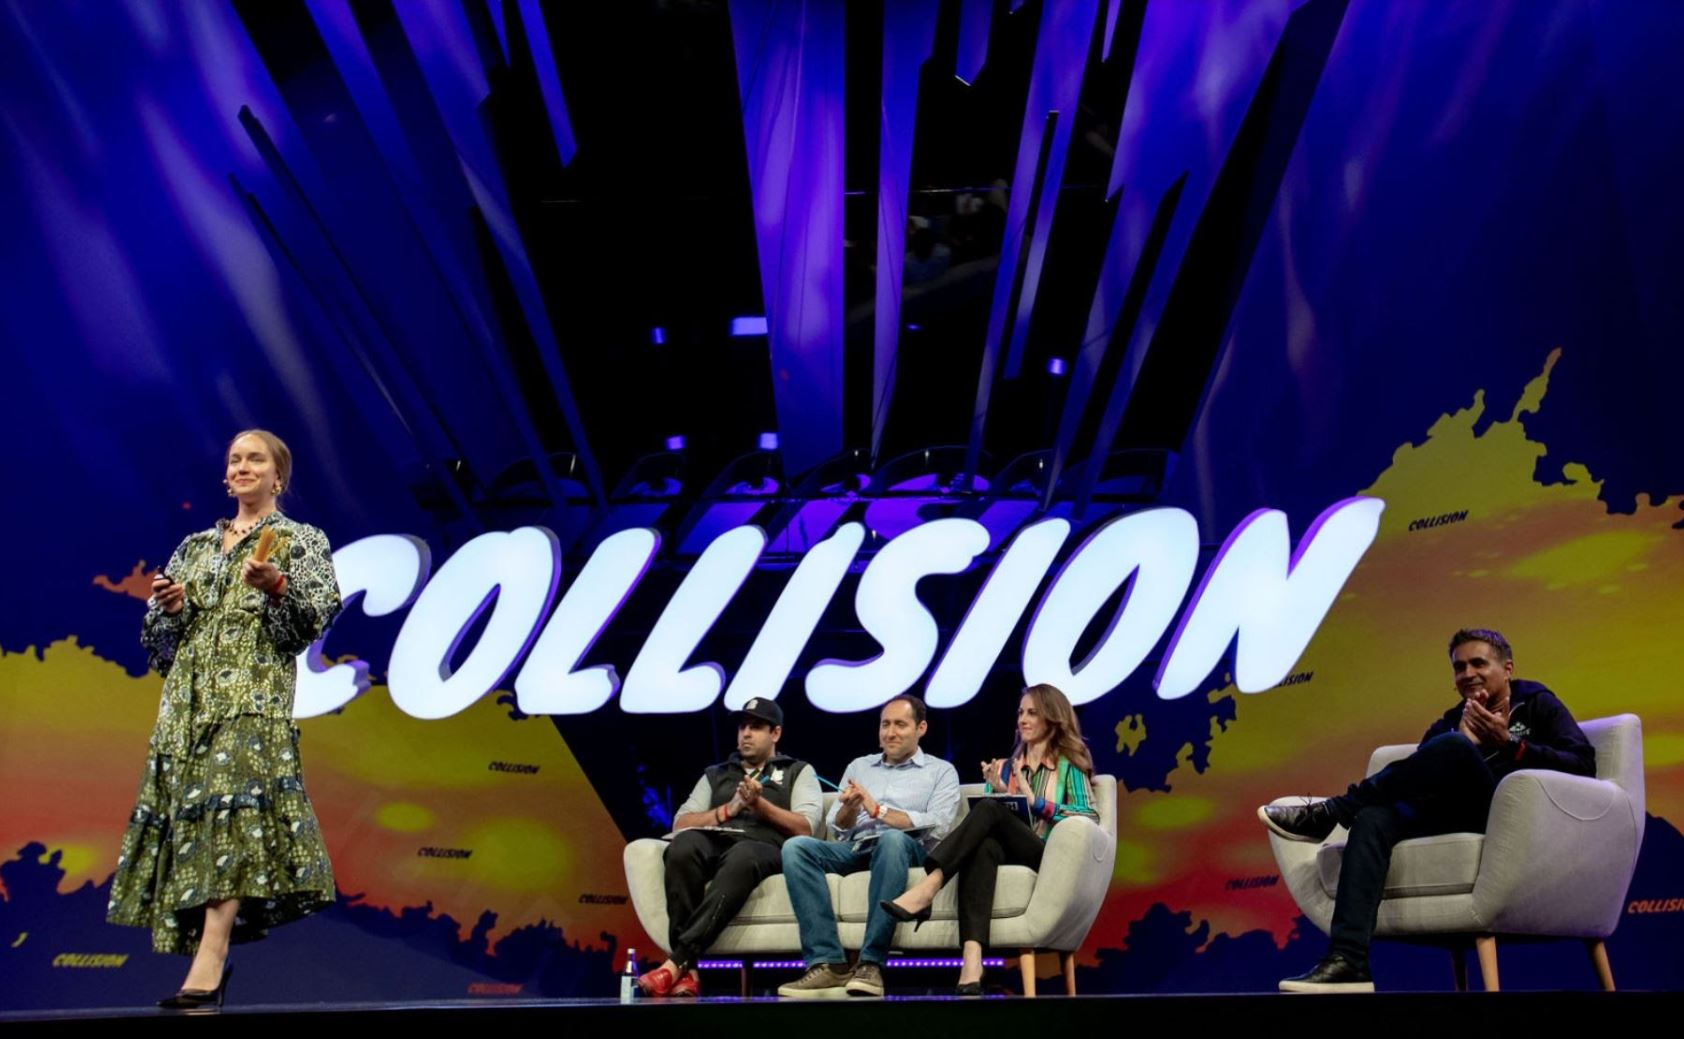 Builder Takes to Collision Conference 2019 in Toronto